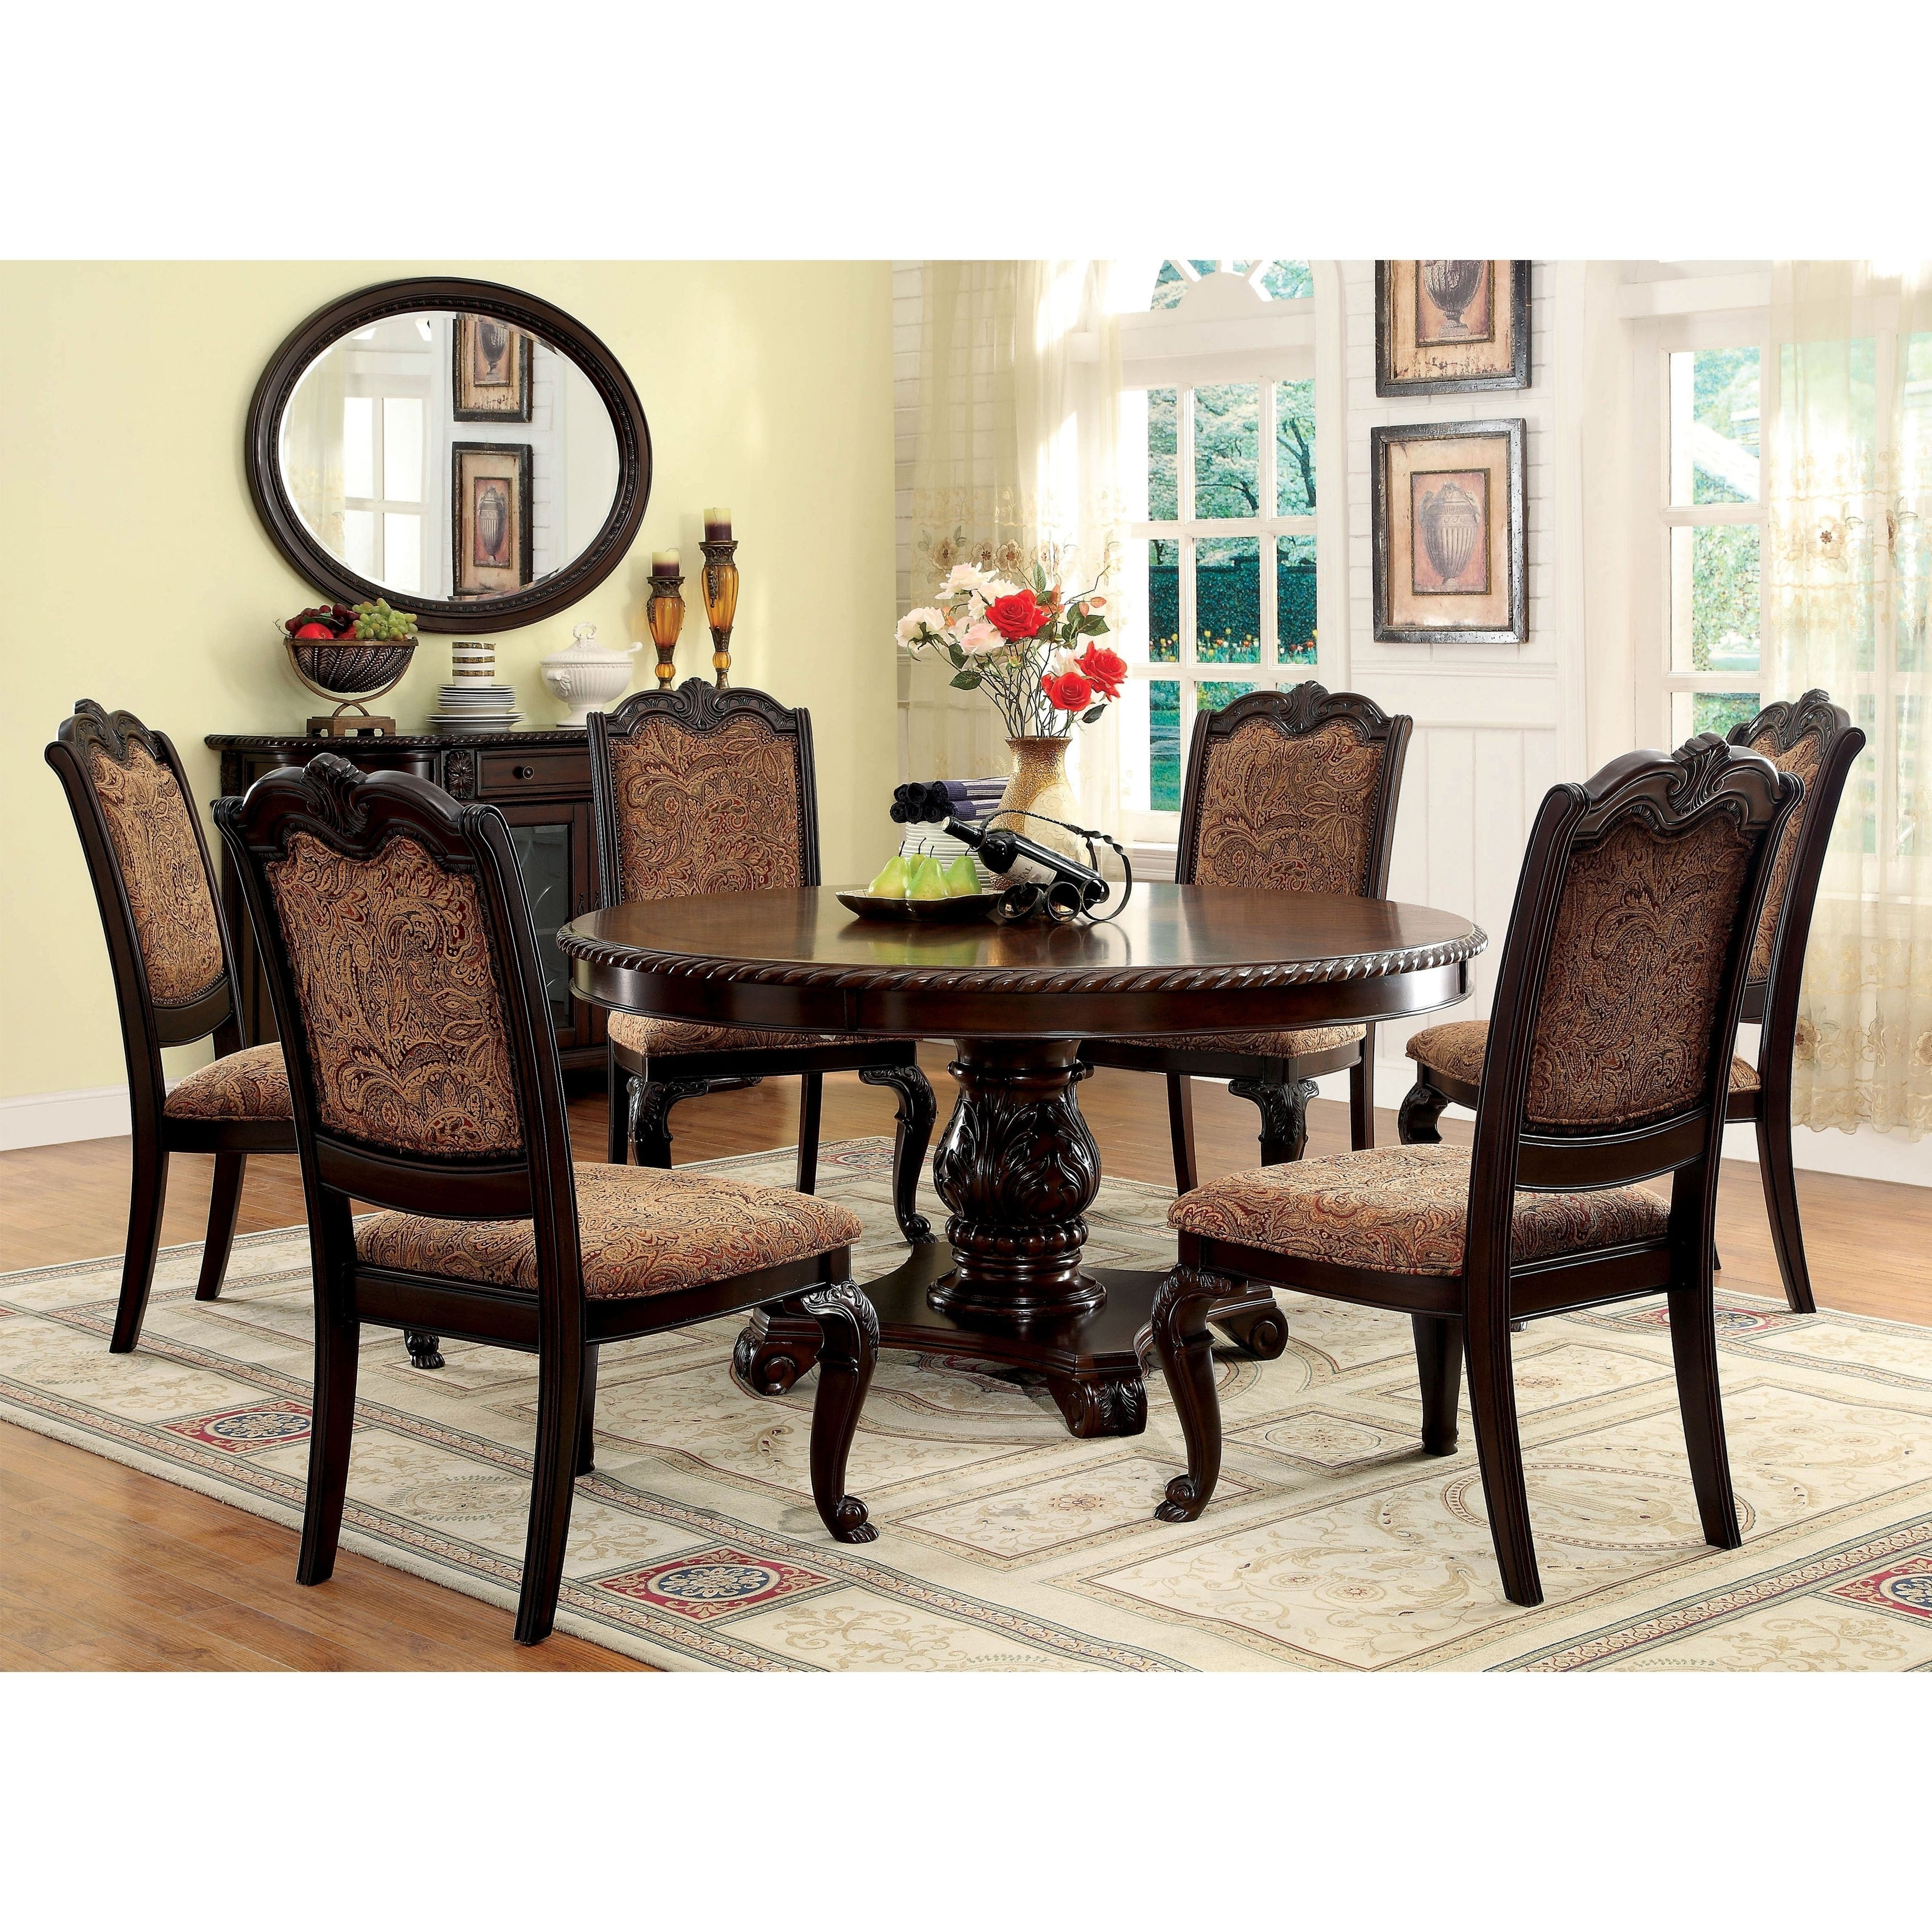 Furniture Of America Oskarre Iii Brown Cherry (Red) 7 Piece Formal For 2018 Valencia 5 Piece 60 Inch Round Dining Sets (View 19 of 20)